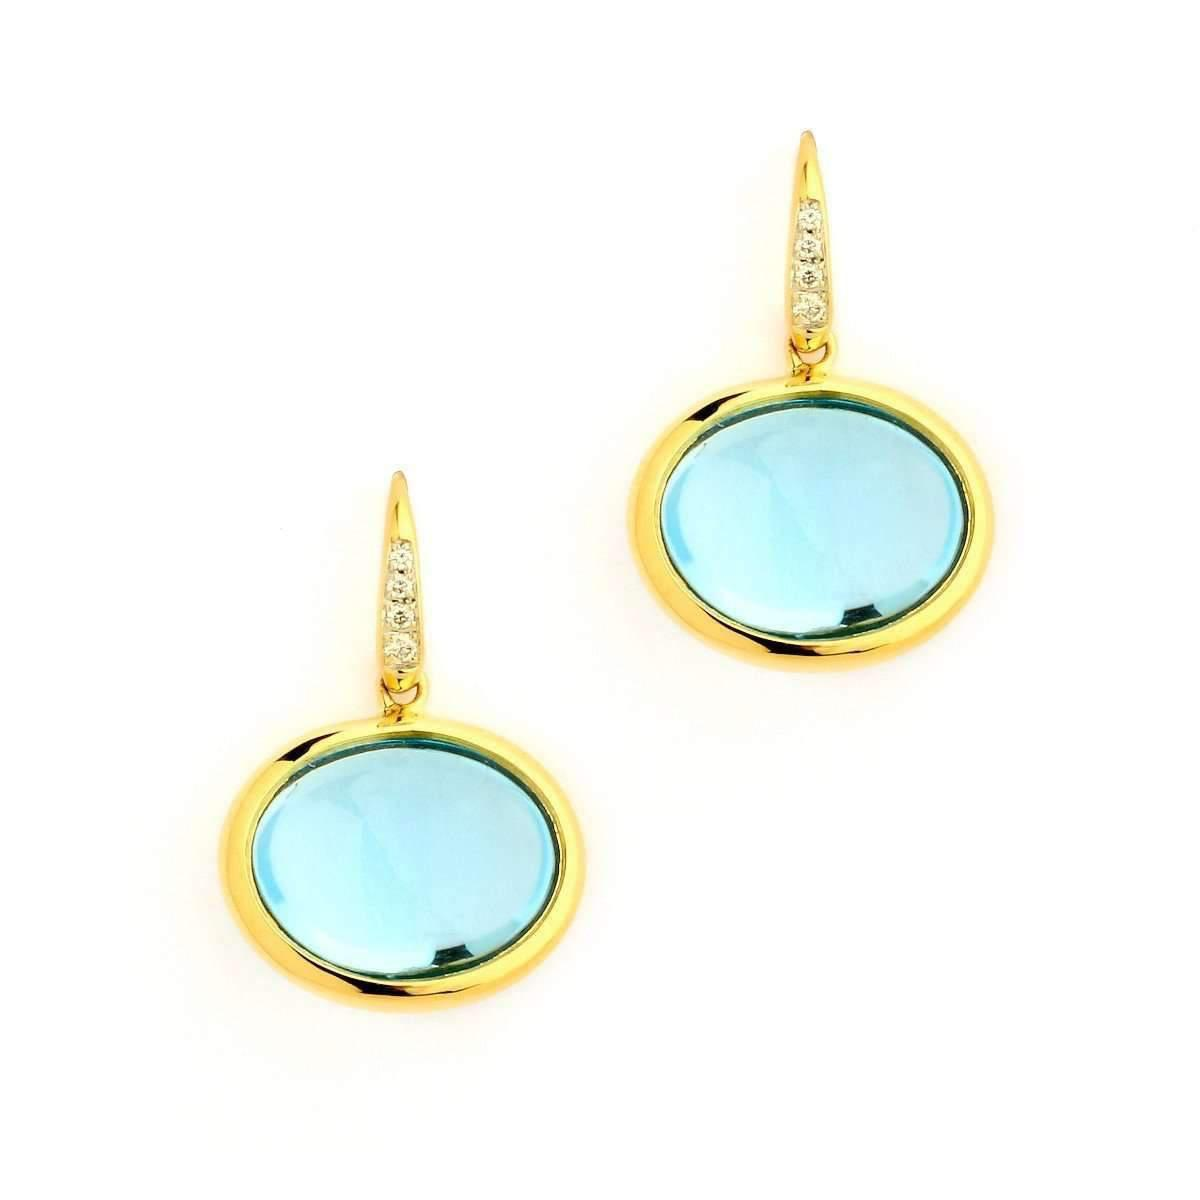 Syna 18kt Blue Topaz Earrings With Diamonds gxOMUP2BPE